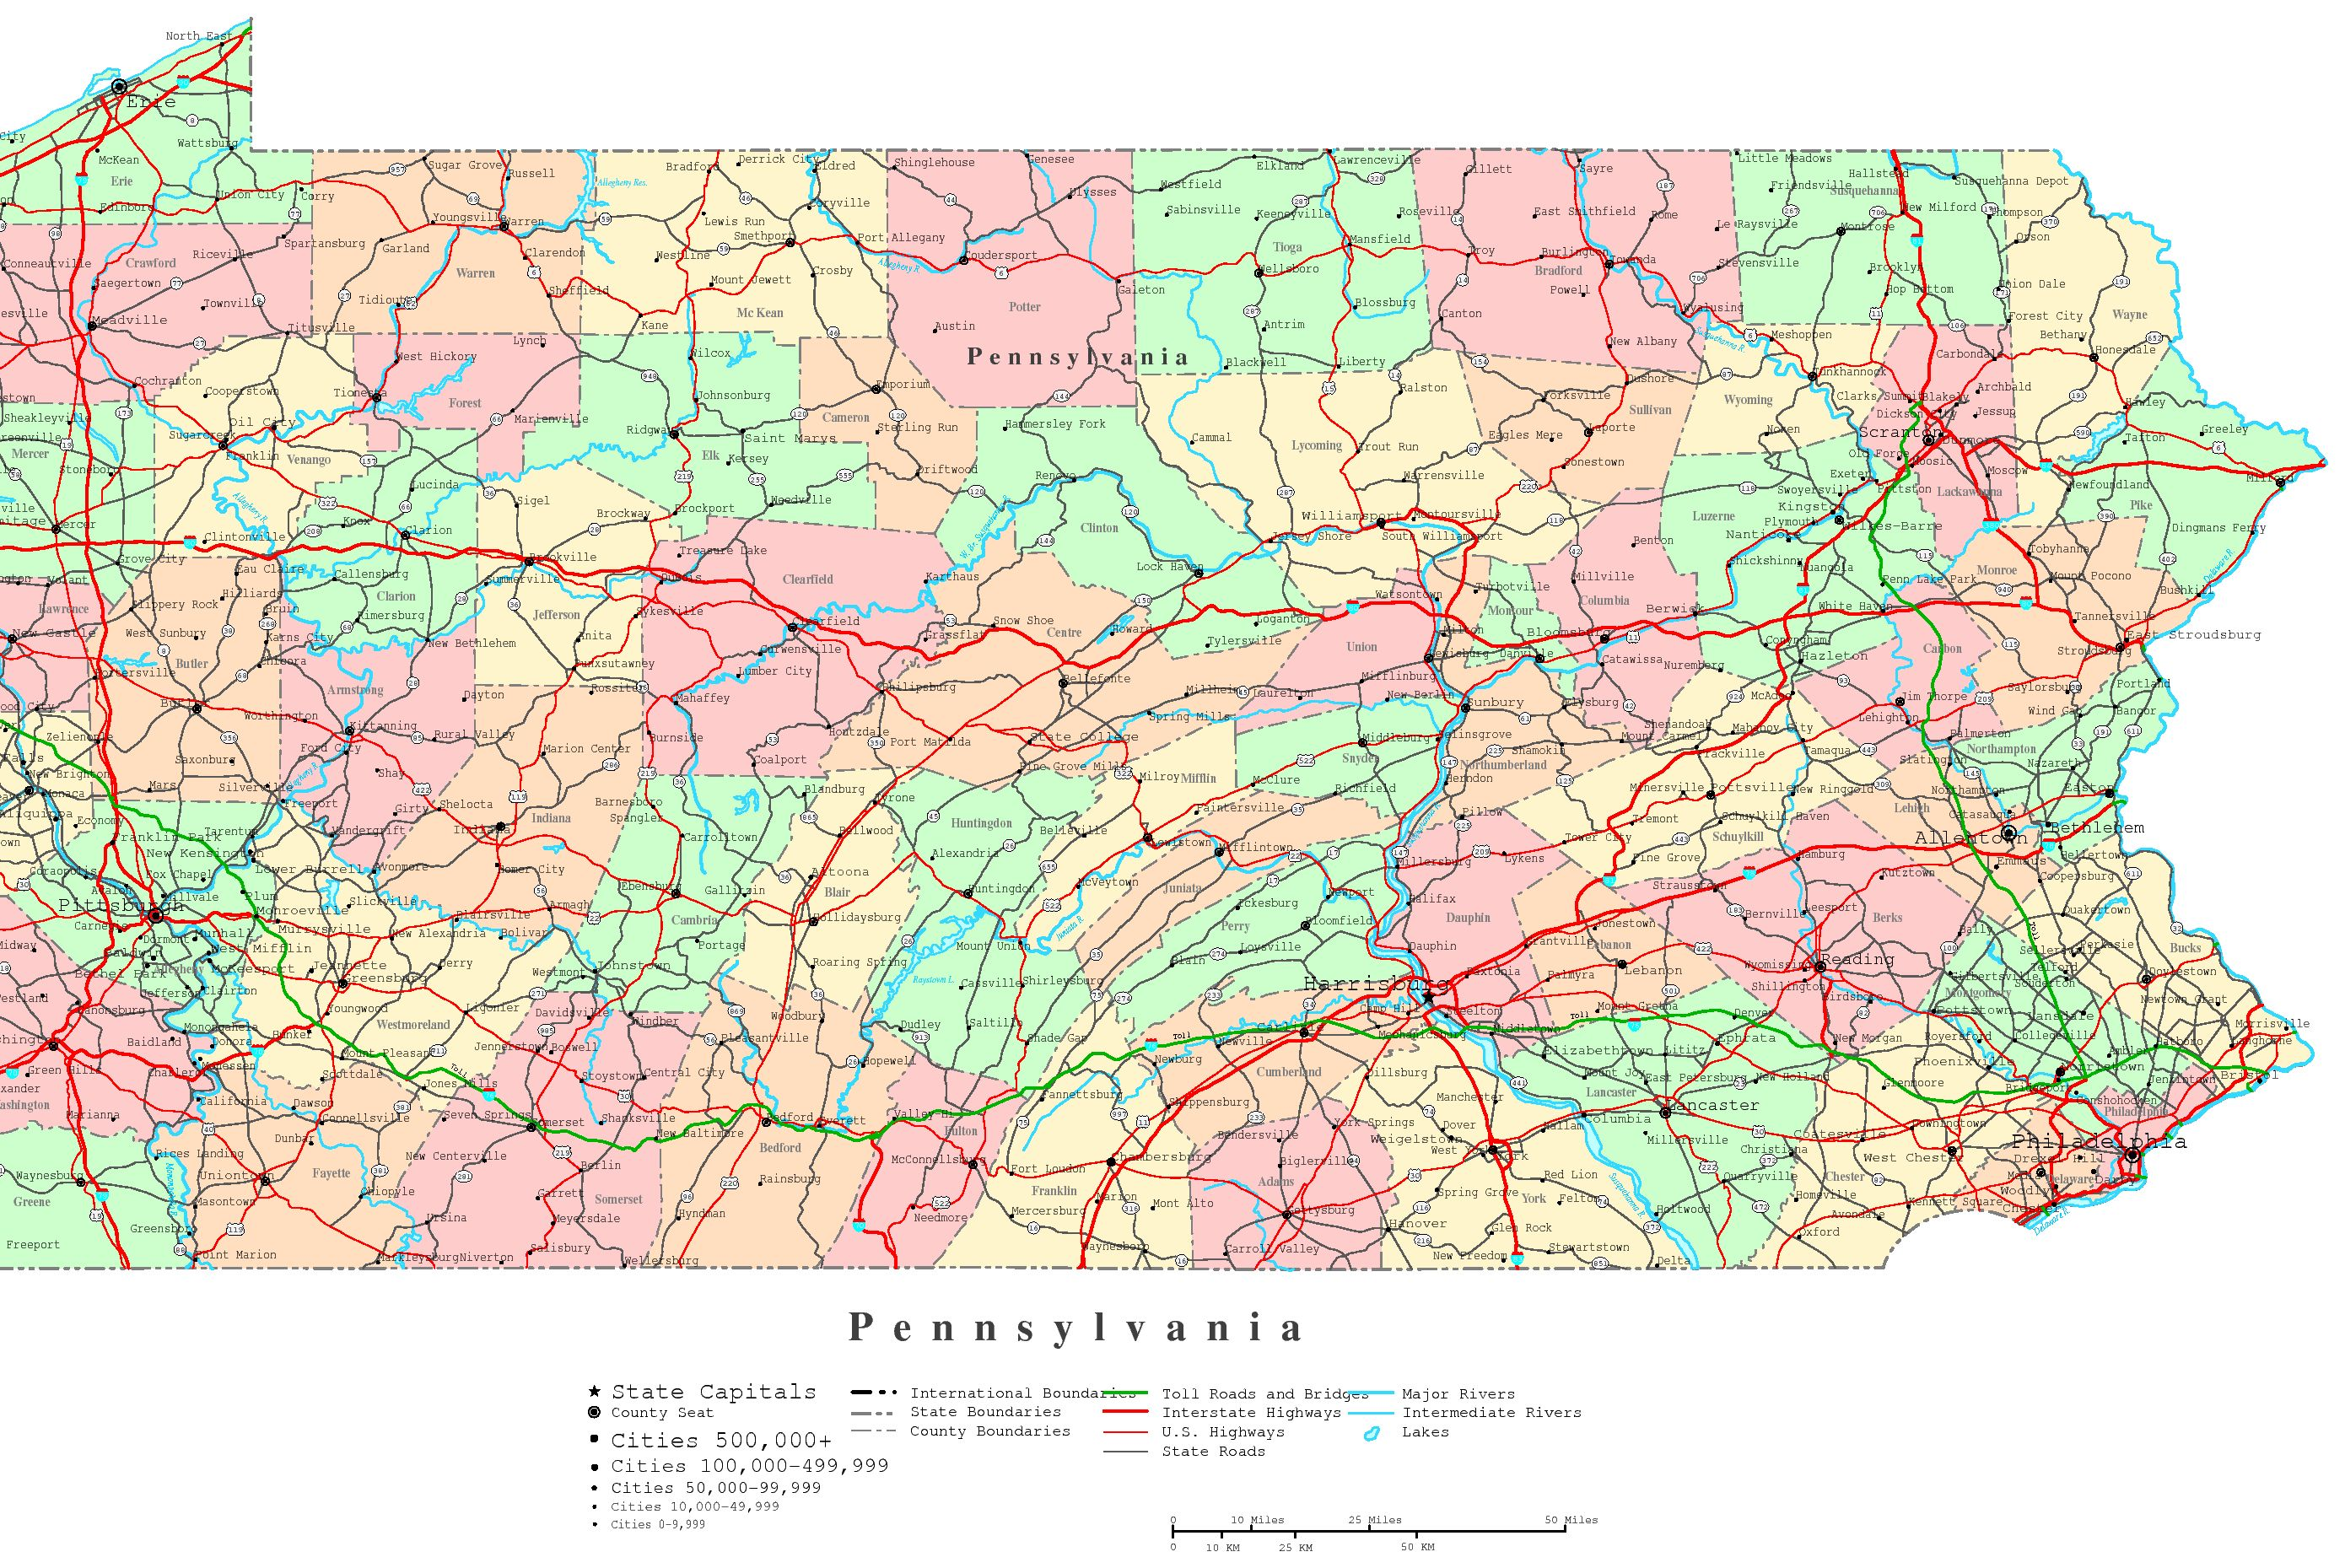 Pennsylvania Printable Map - Pennyslvania map